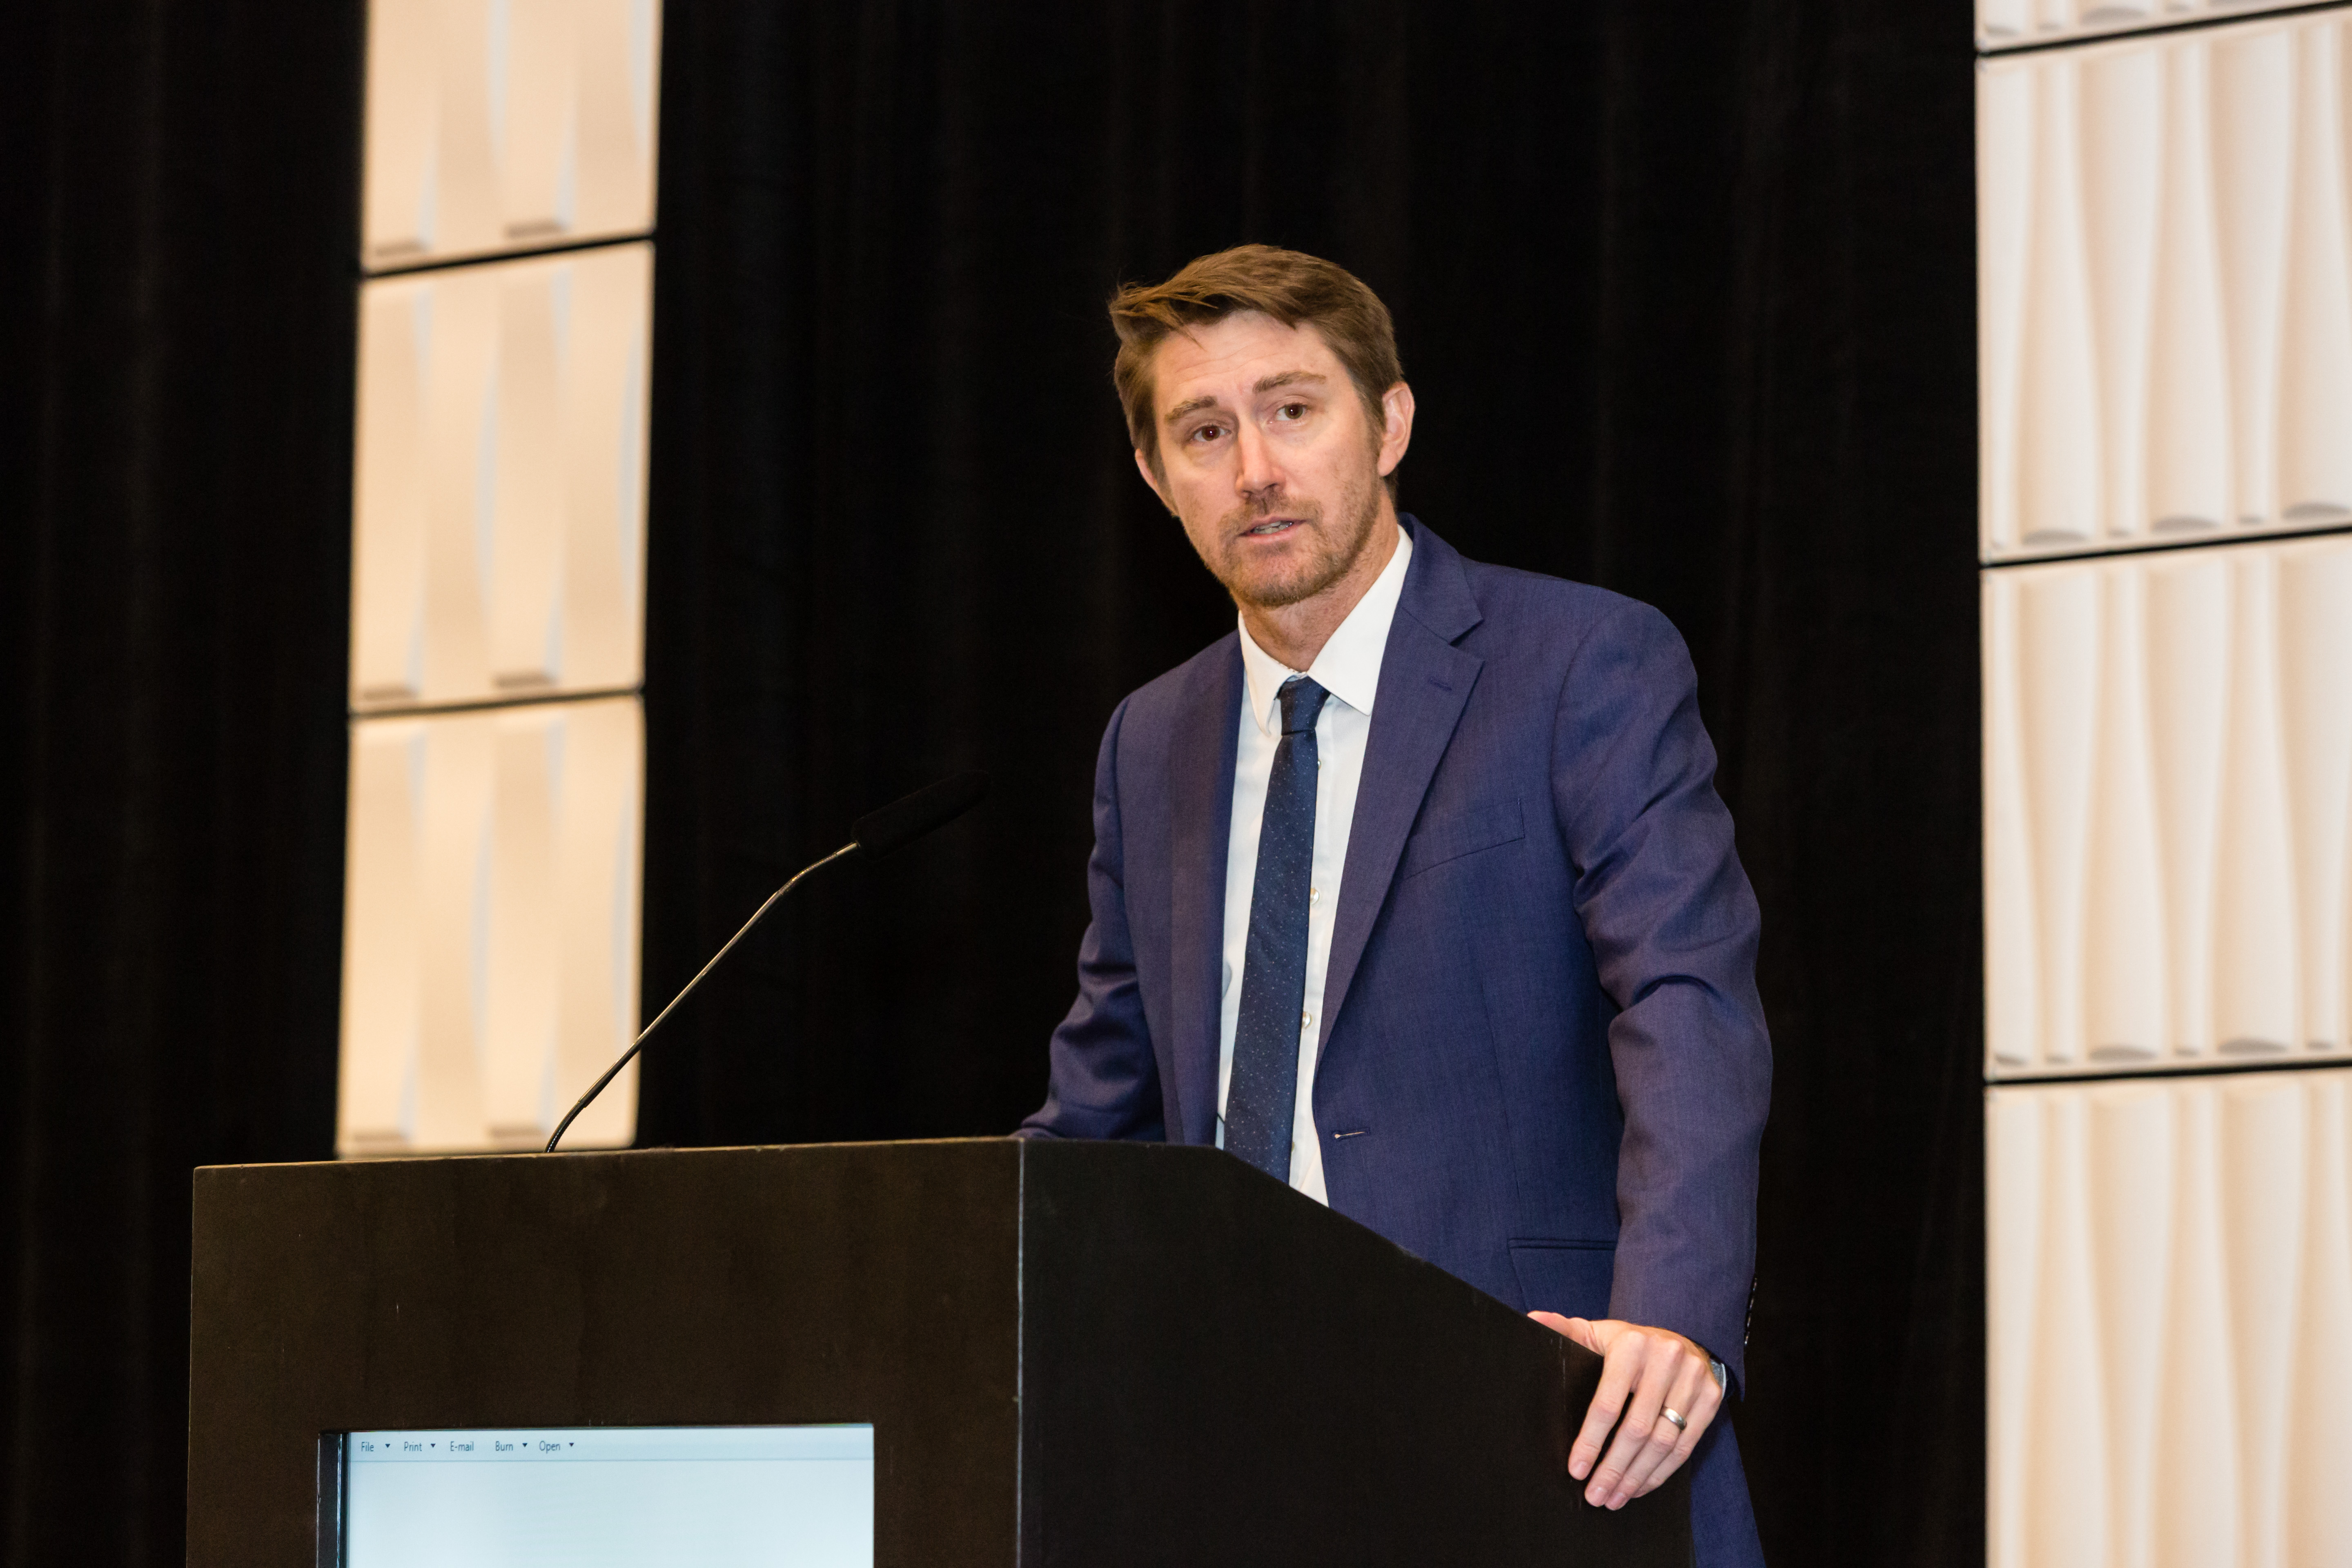 Derran Moss Gives Keynote at 2018 Annual Conference